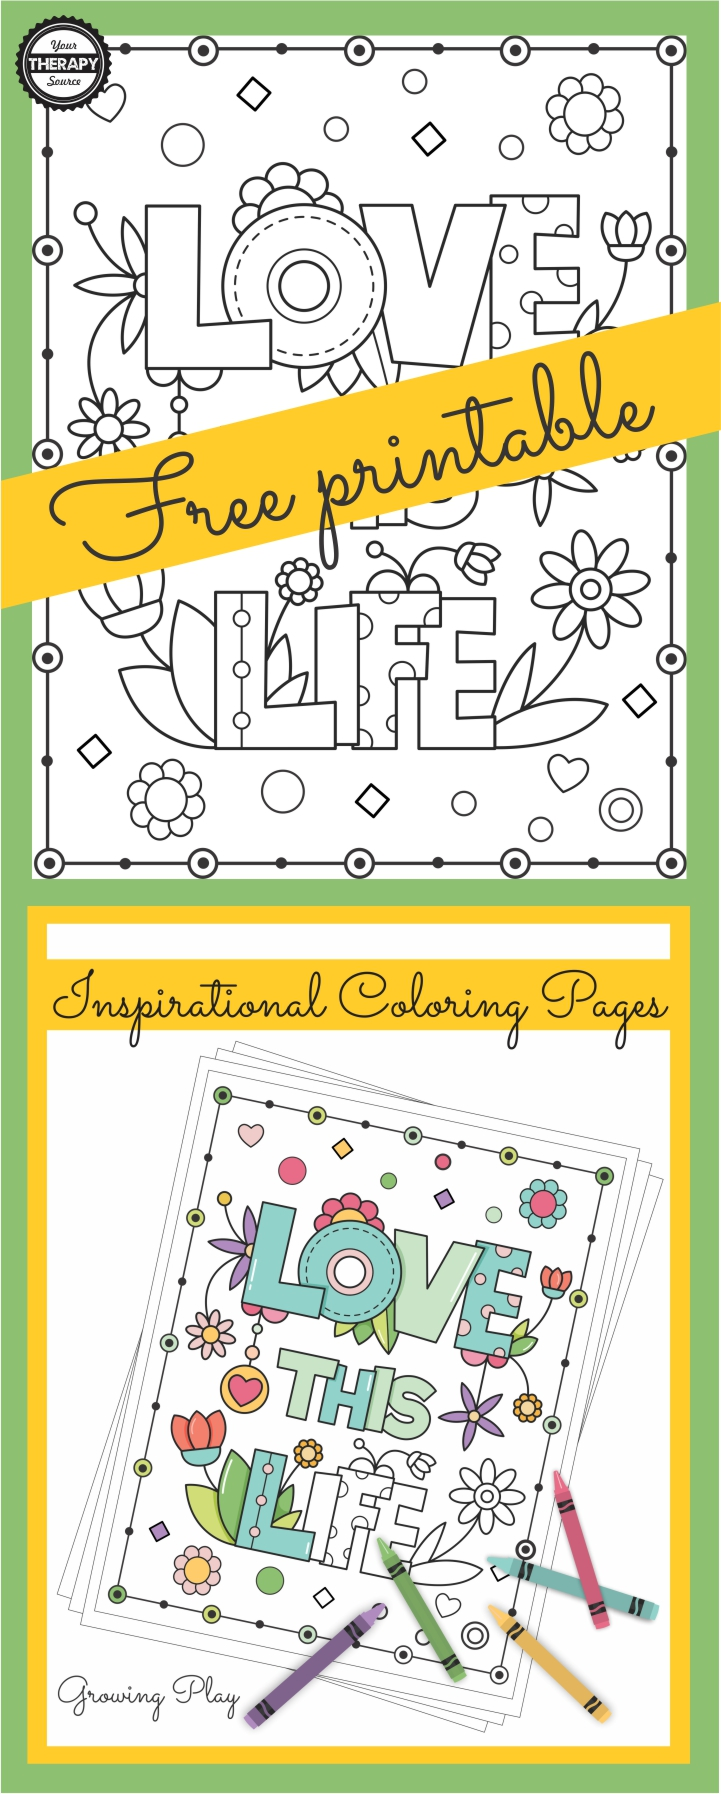 Do you enjoy coloring?  I do find it relaxing and calming unless they are too intricate.  For some, if you were to color just one page it would take hours and hours.  This FREE Love this Life inspirational coloring page freebie is simple with a beautiful message and it won't take hours to complete